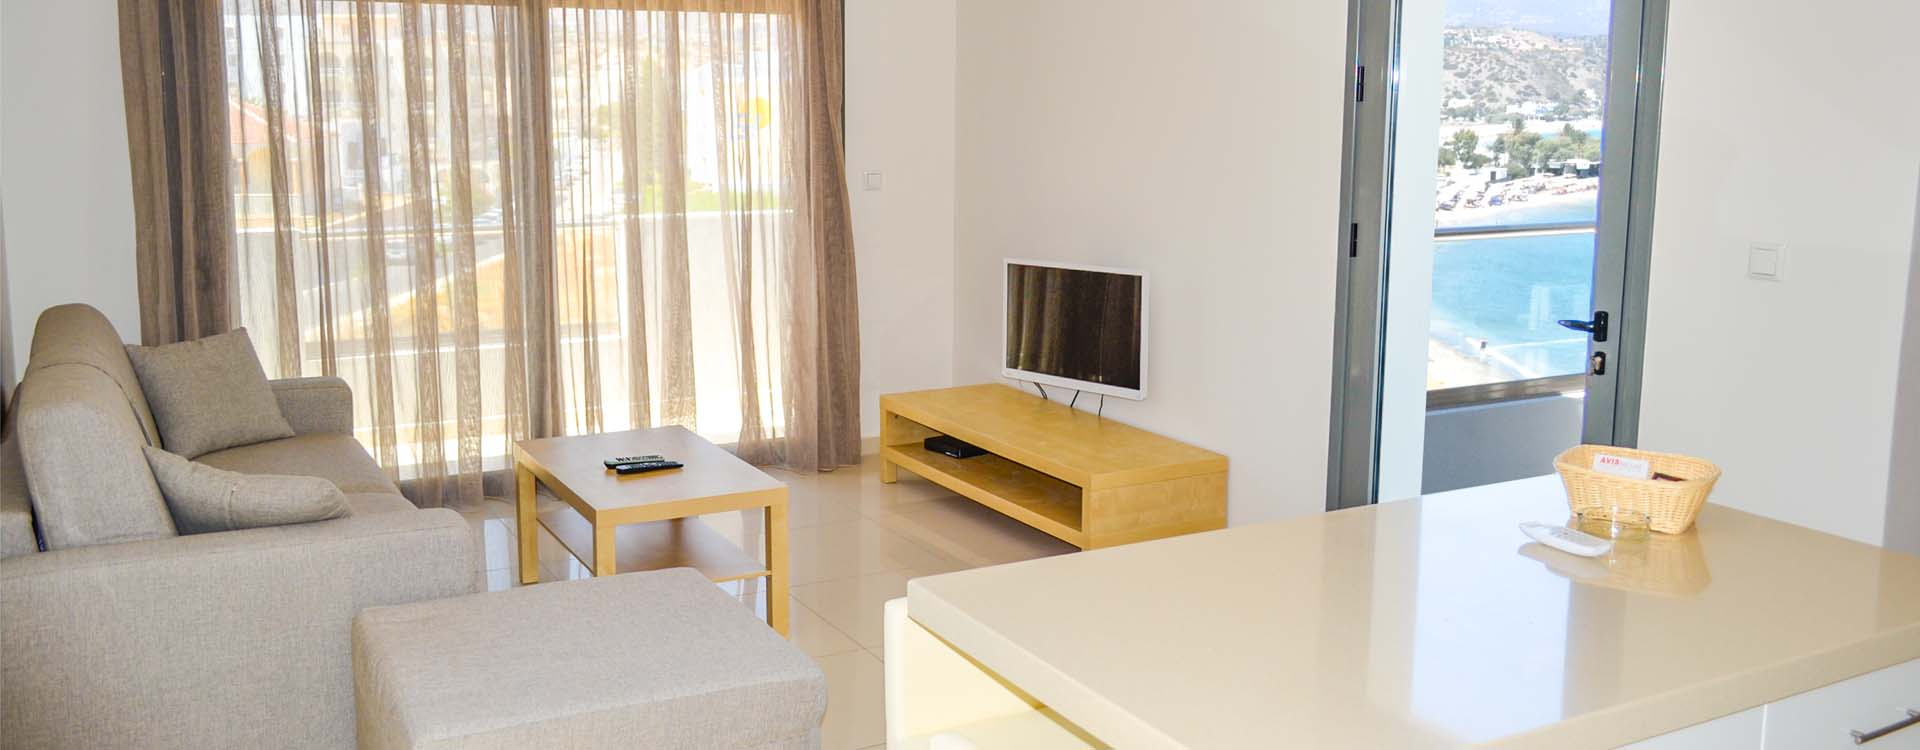 Fully furnished and equipped apartments with a view of the sea and mountains